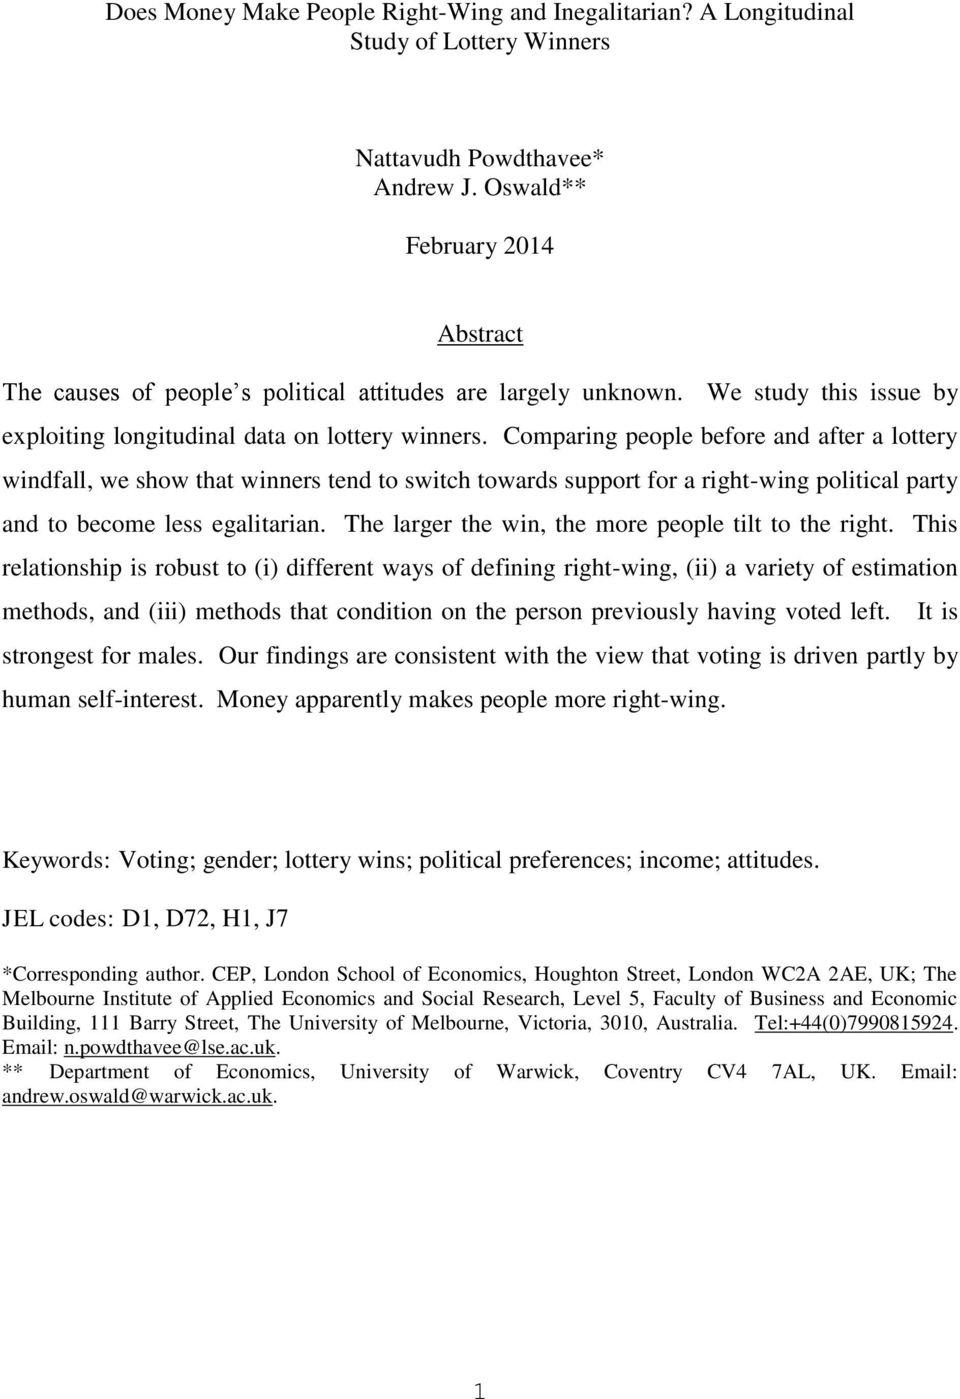 Comparing people before and after a lottery windfall, we show that winners tend to switch towards support for a right-wing political party and to become less egalitarian.